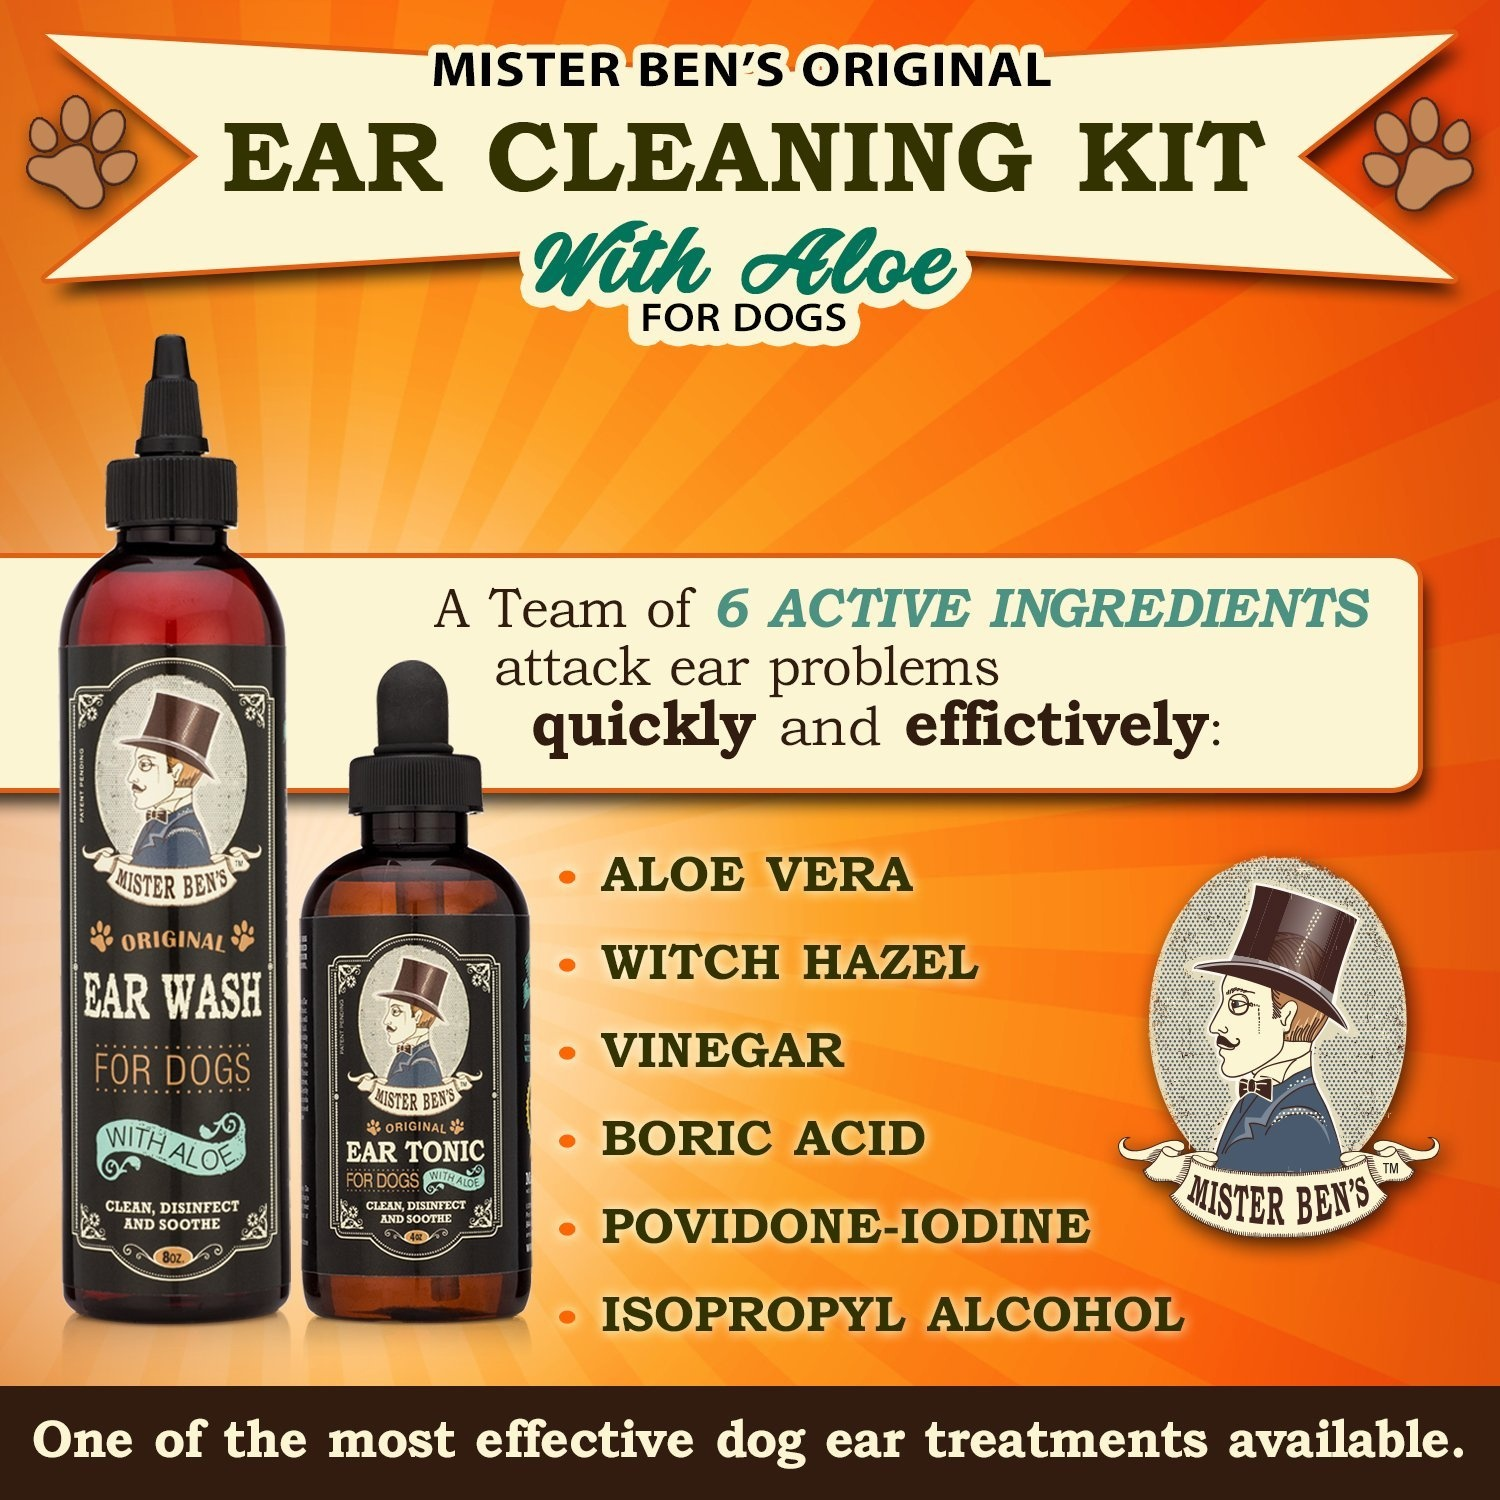 MOST EFFECTIVE DOG EAR CLEANING KIT - Mister Ben's Original Ear Tonic &  Wash w/Aloe - Provides FAST RELIEF from Dog Ear Infections, Irritations,